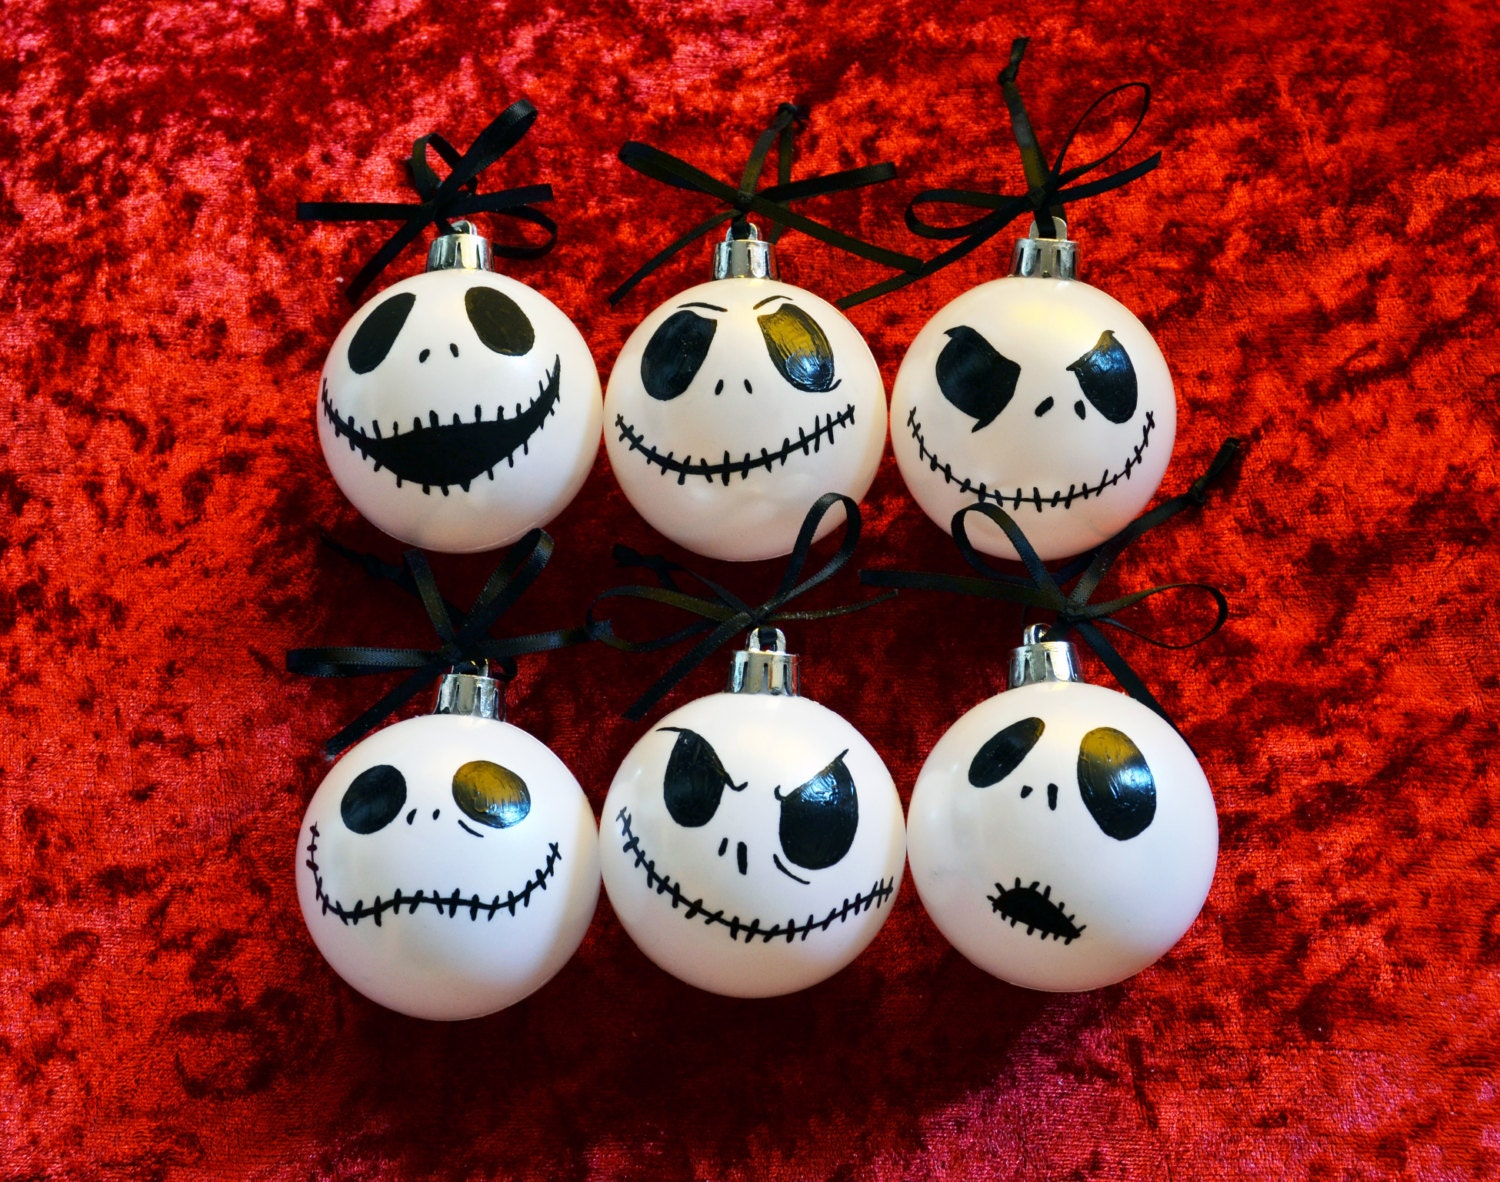 Pack of 6 Christmas ornaments with Jack Skellington face